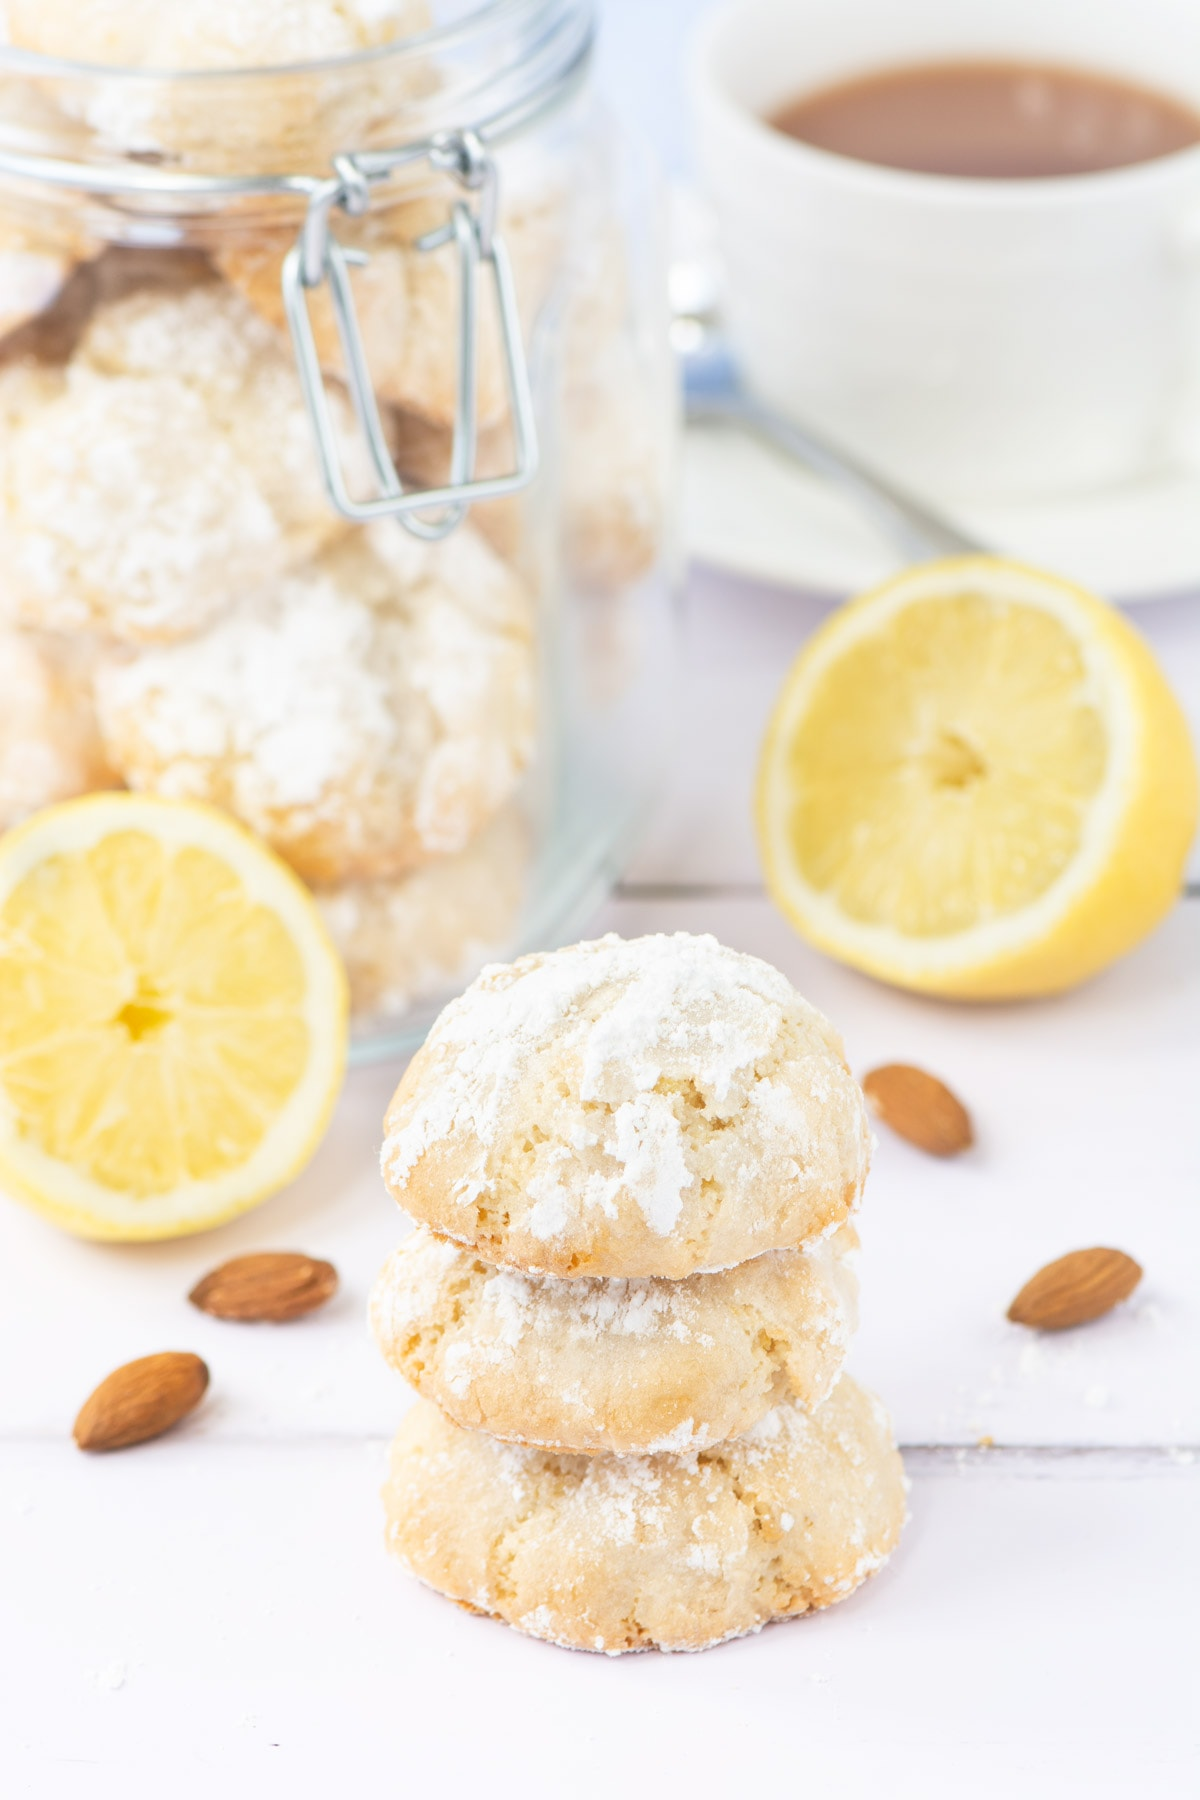 Delicious soft centred Lemon Amaretti Biscuits. So easy to make, crisp on the outside, chewy in the middle and packed with lemon flavour. They're naturally gluten-free too.